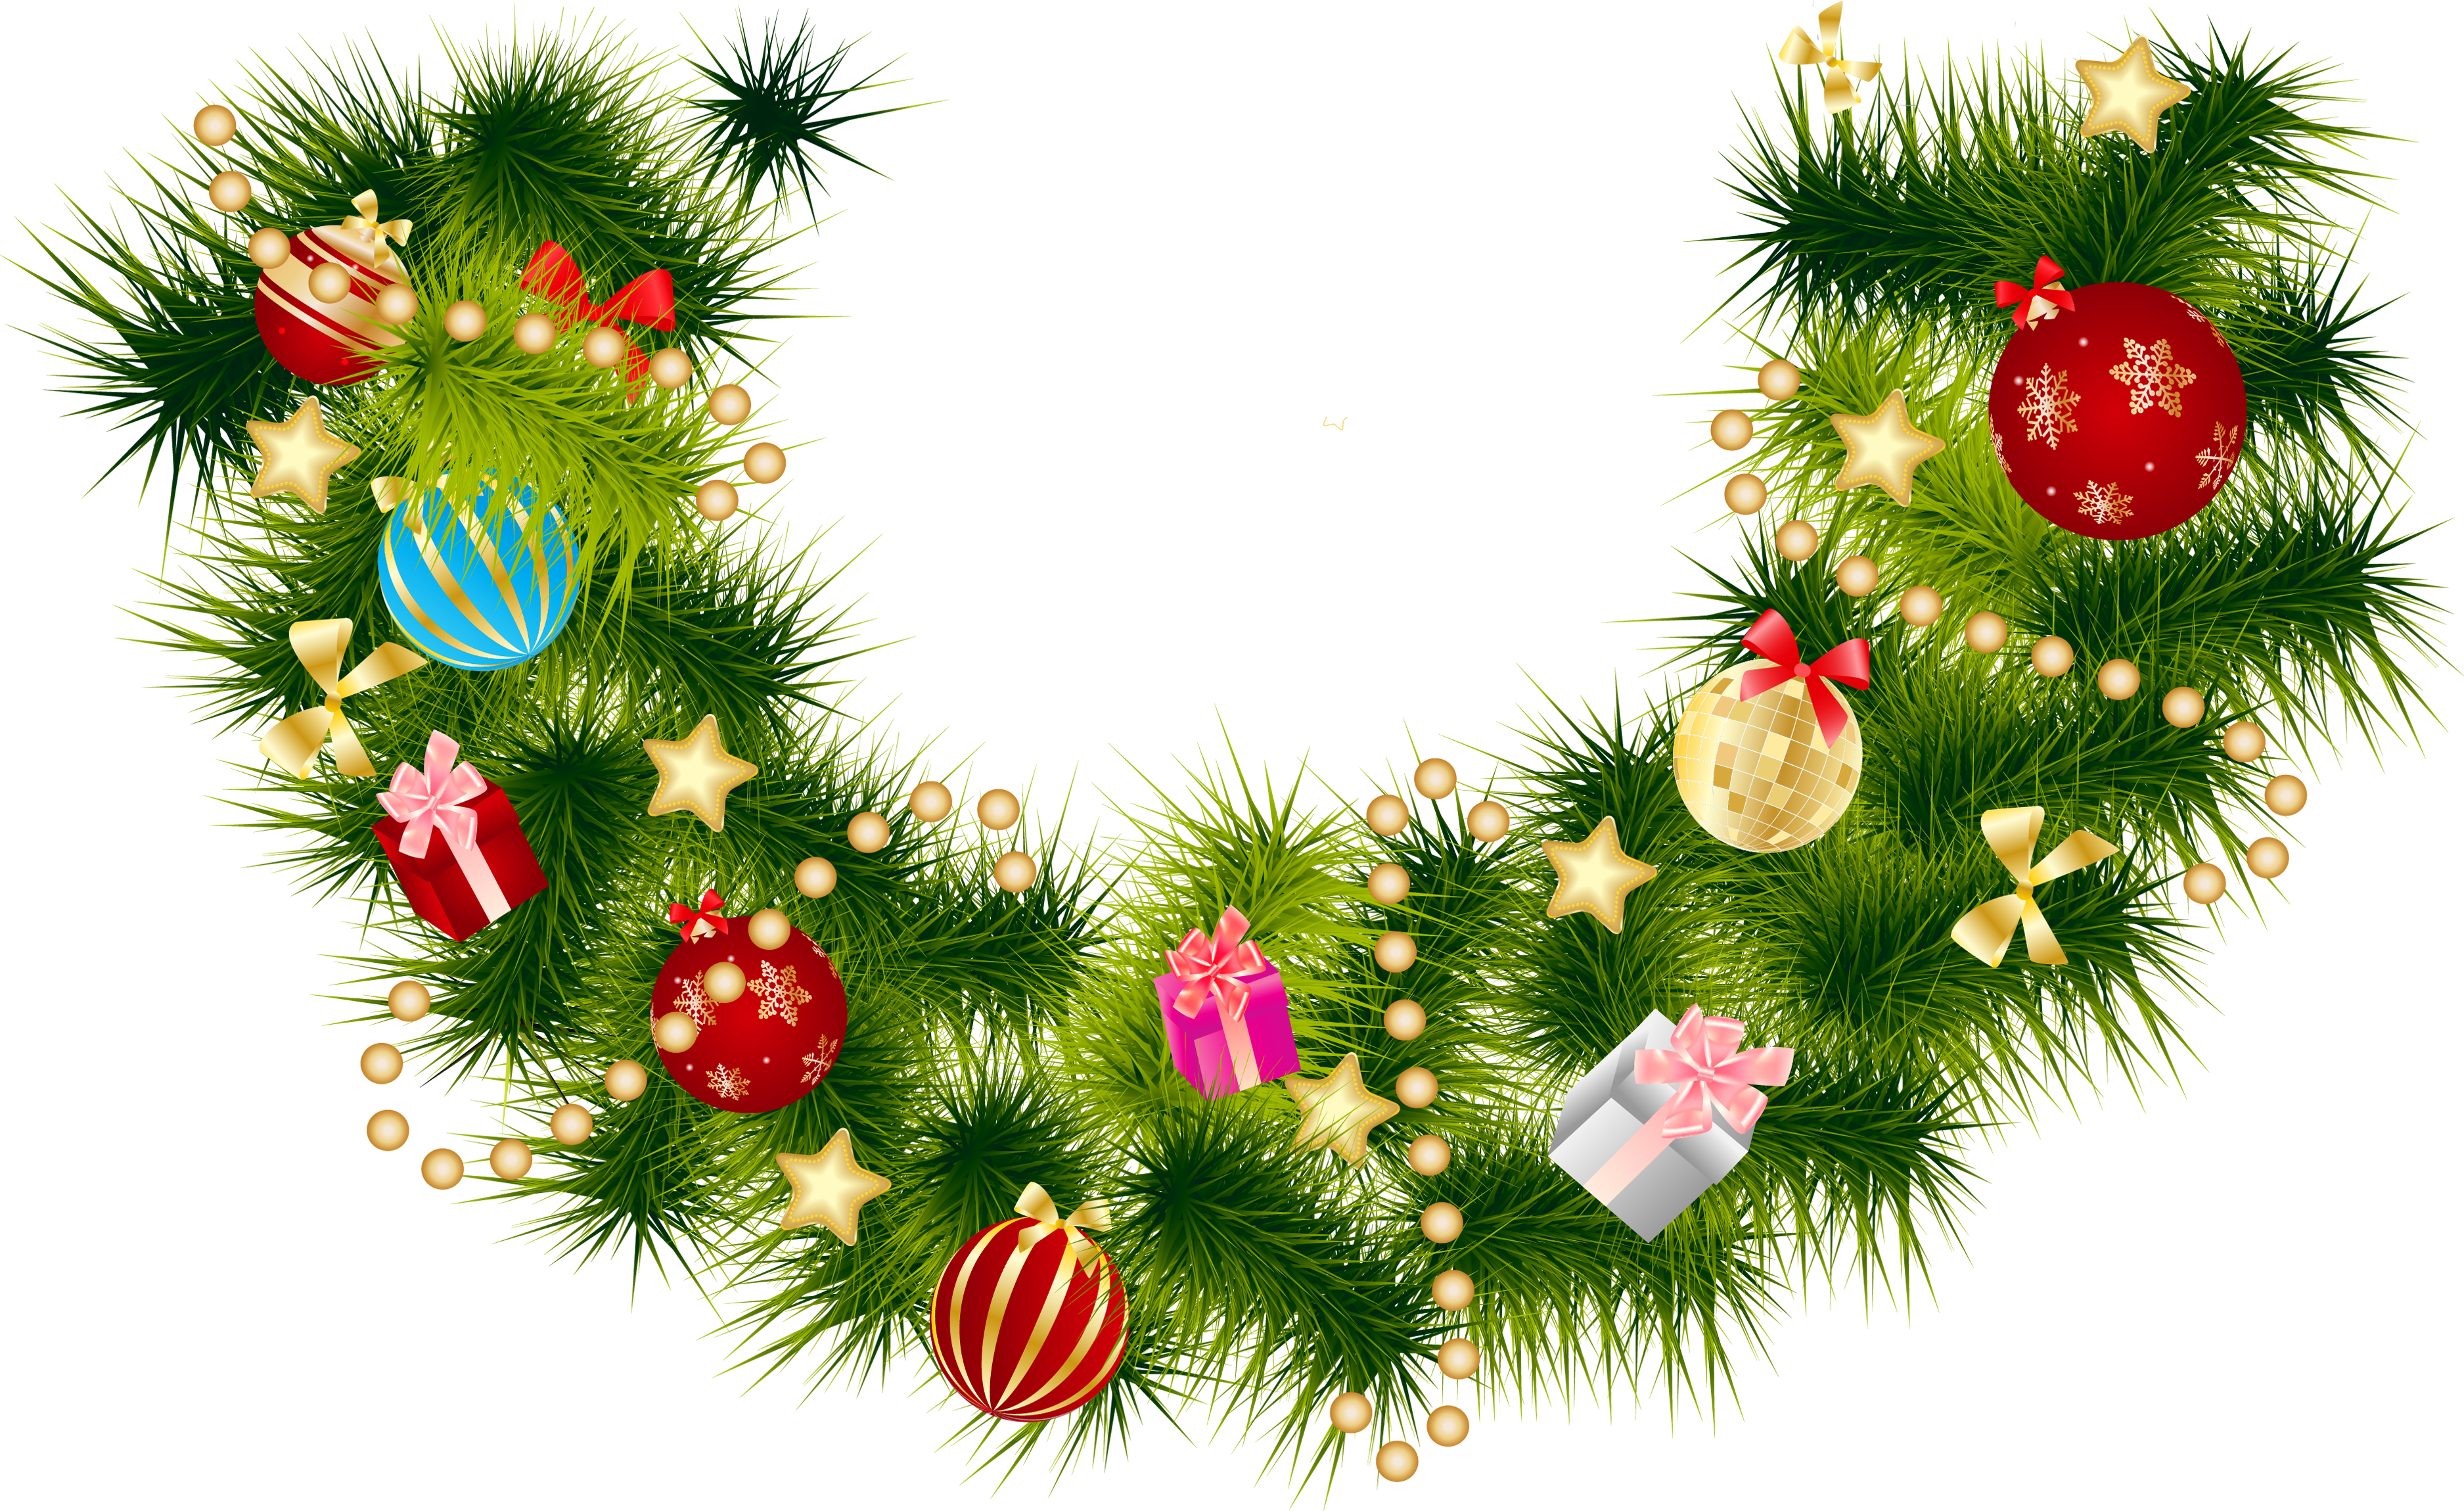 jpg library stock Christmas Pine Branch Garland with Ornaments